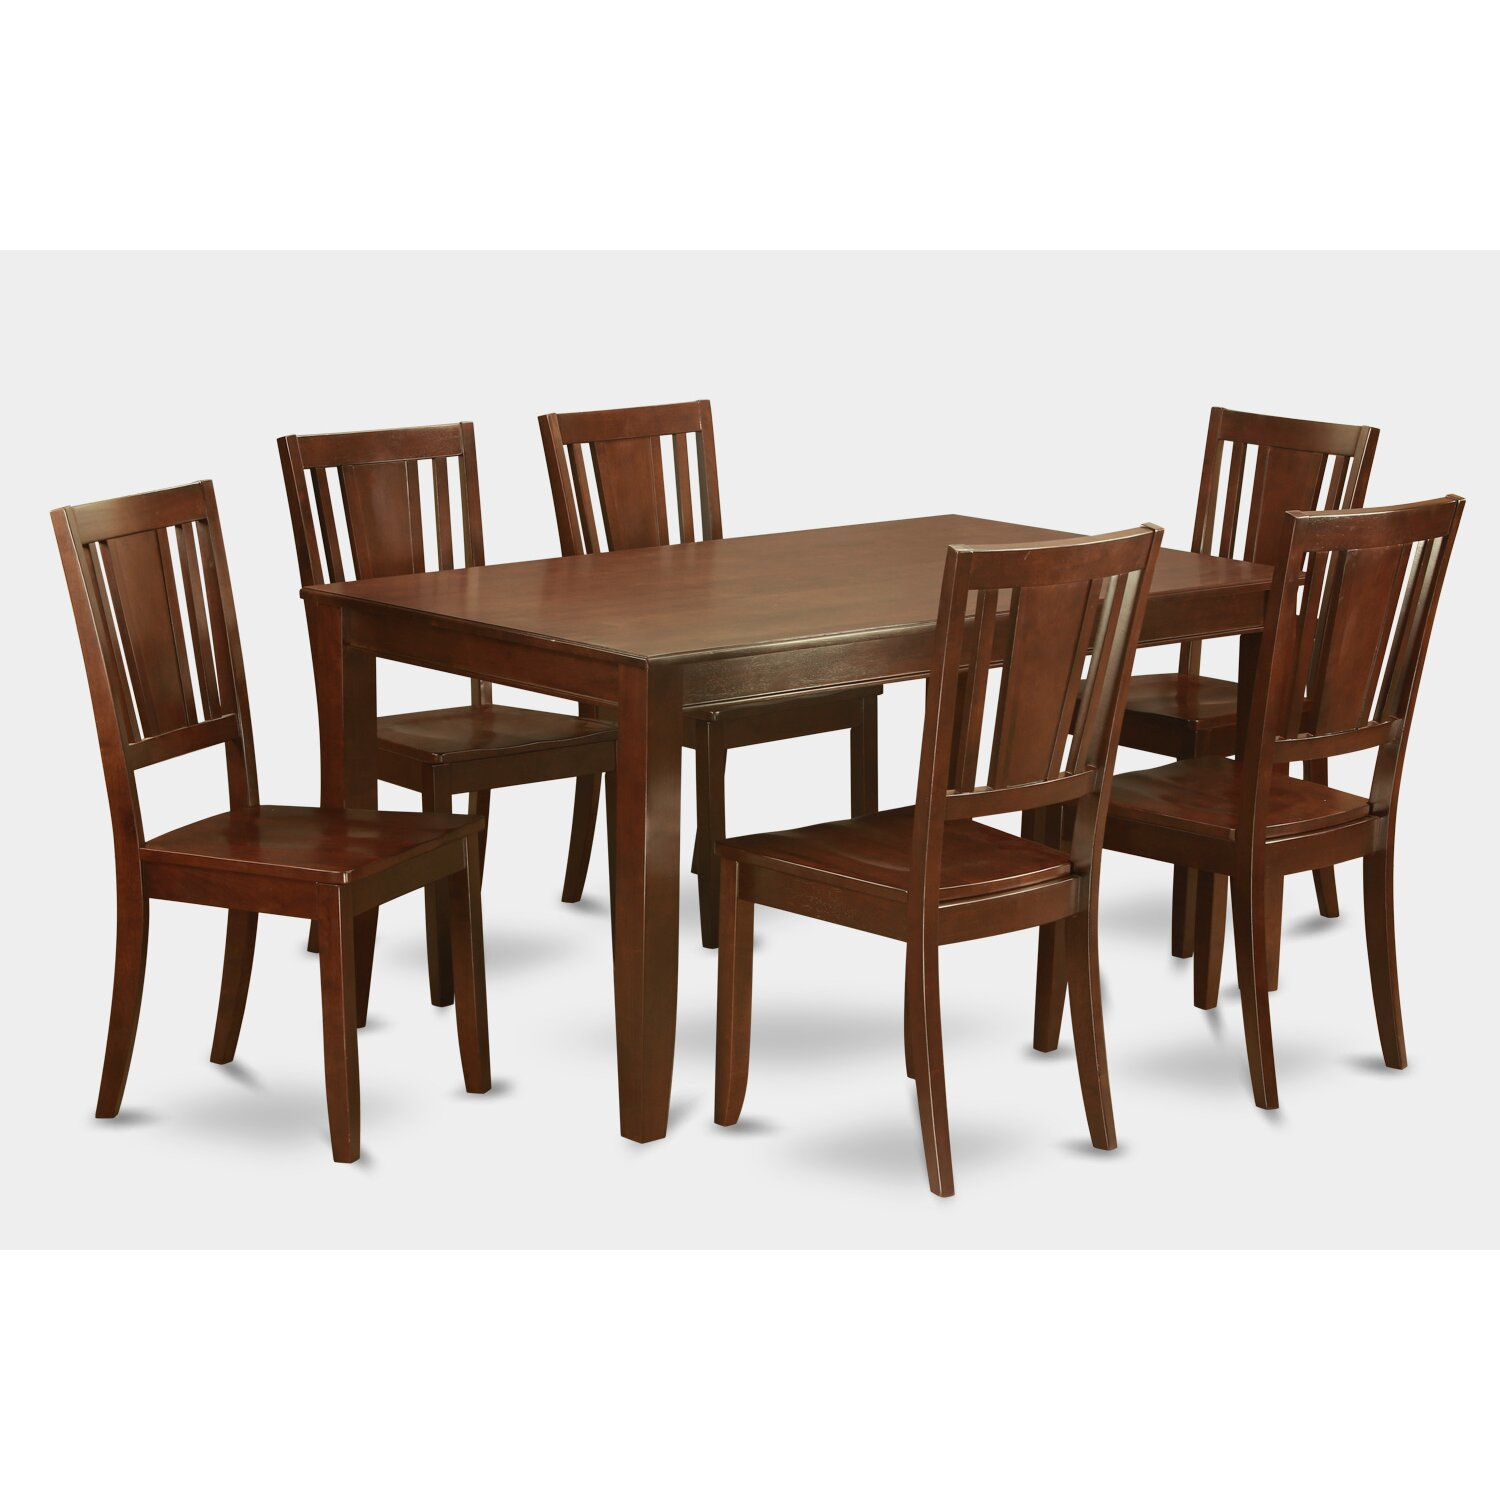 7 Piece Dining Set ~ Dudley piece dining set wayfair